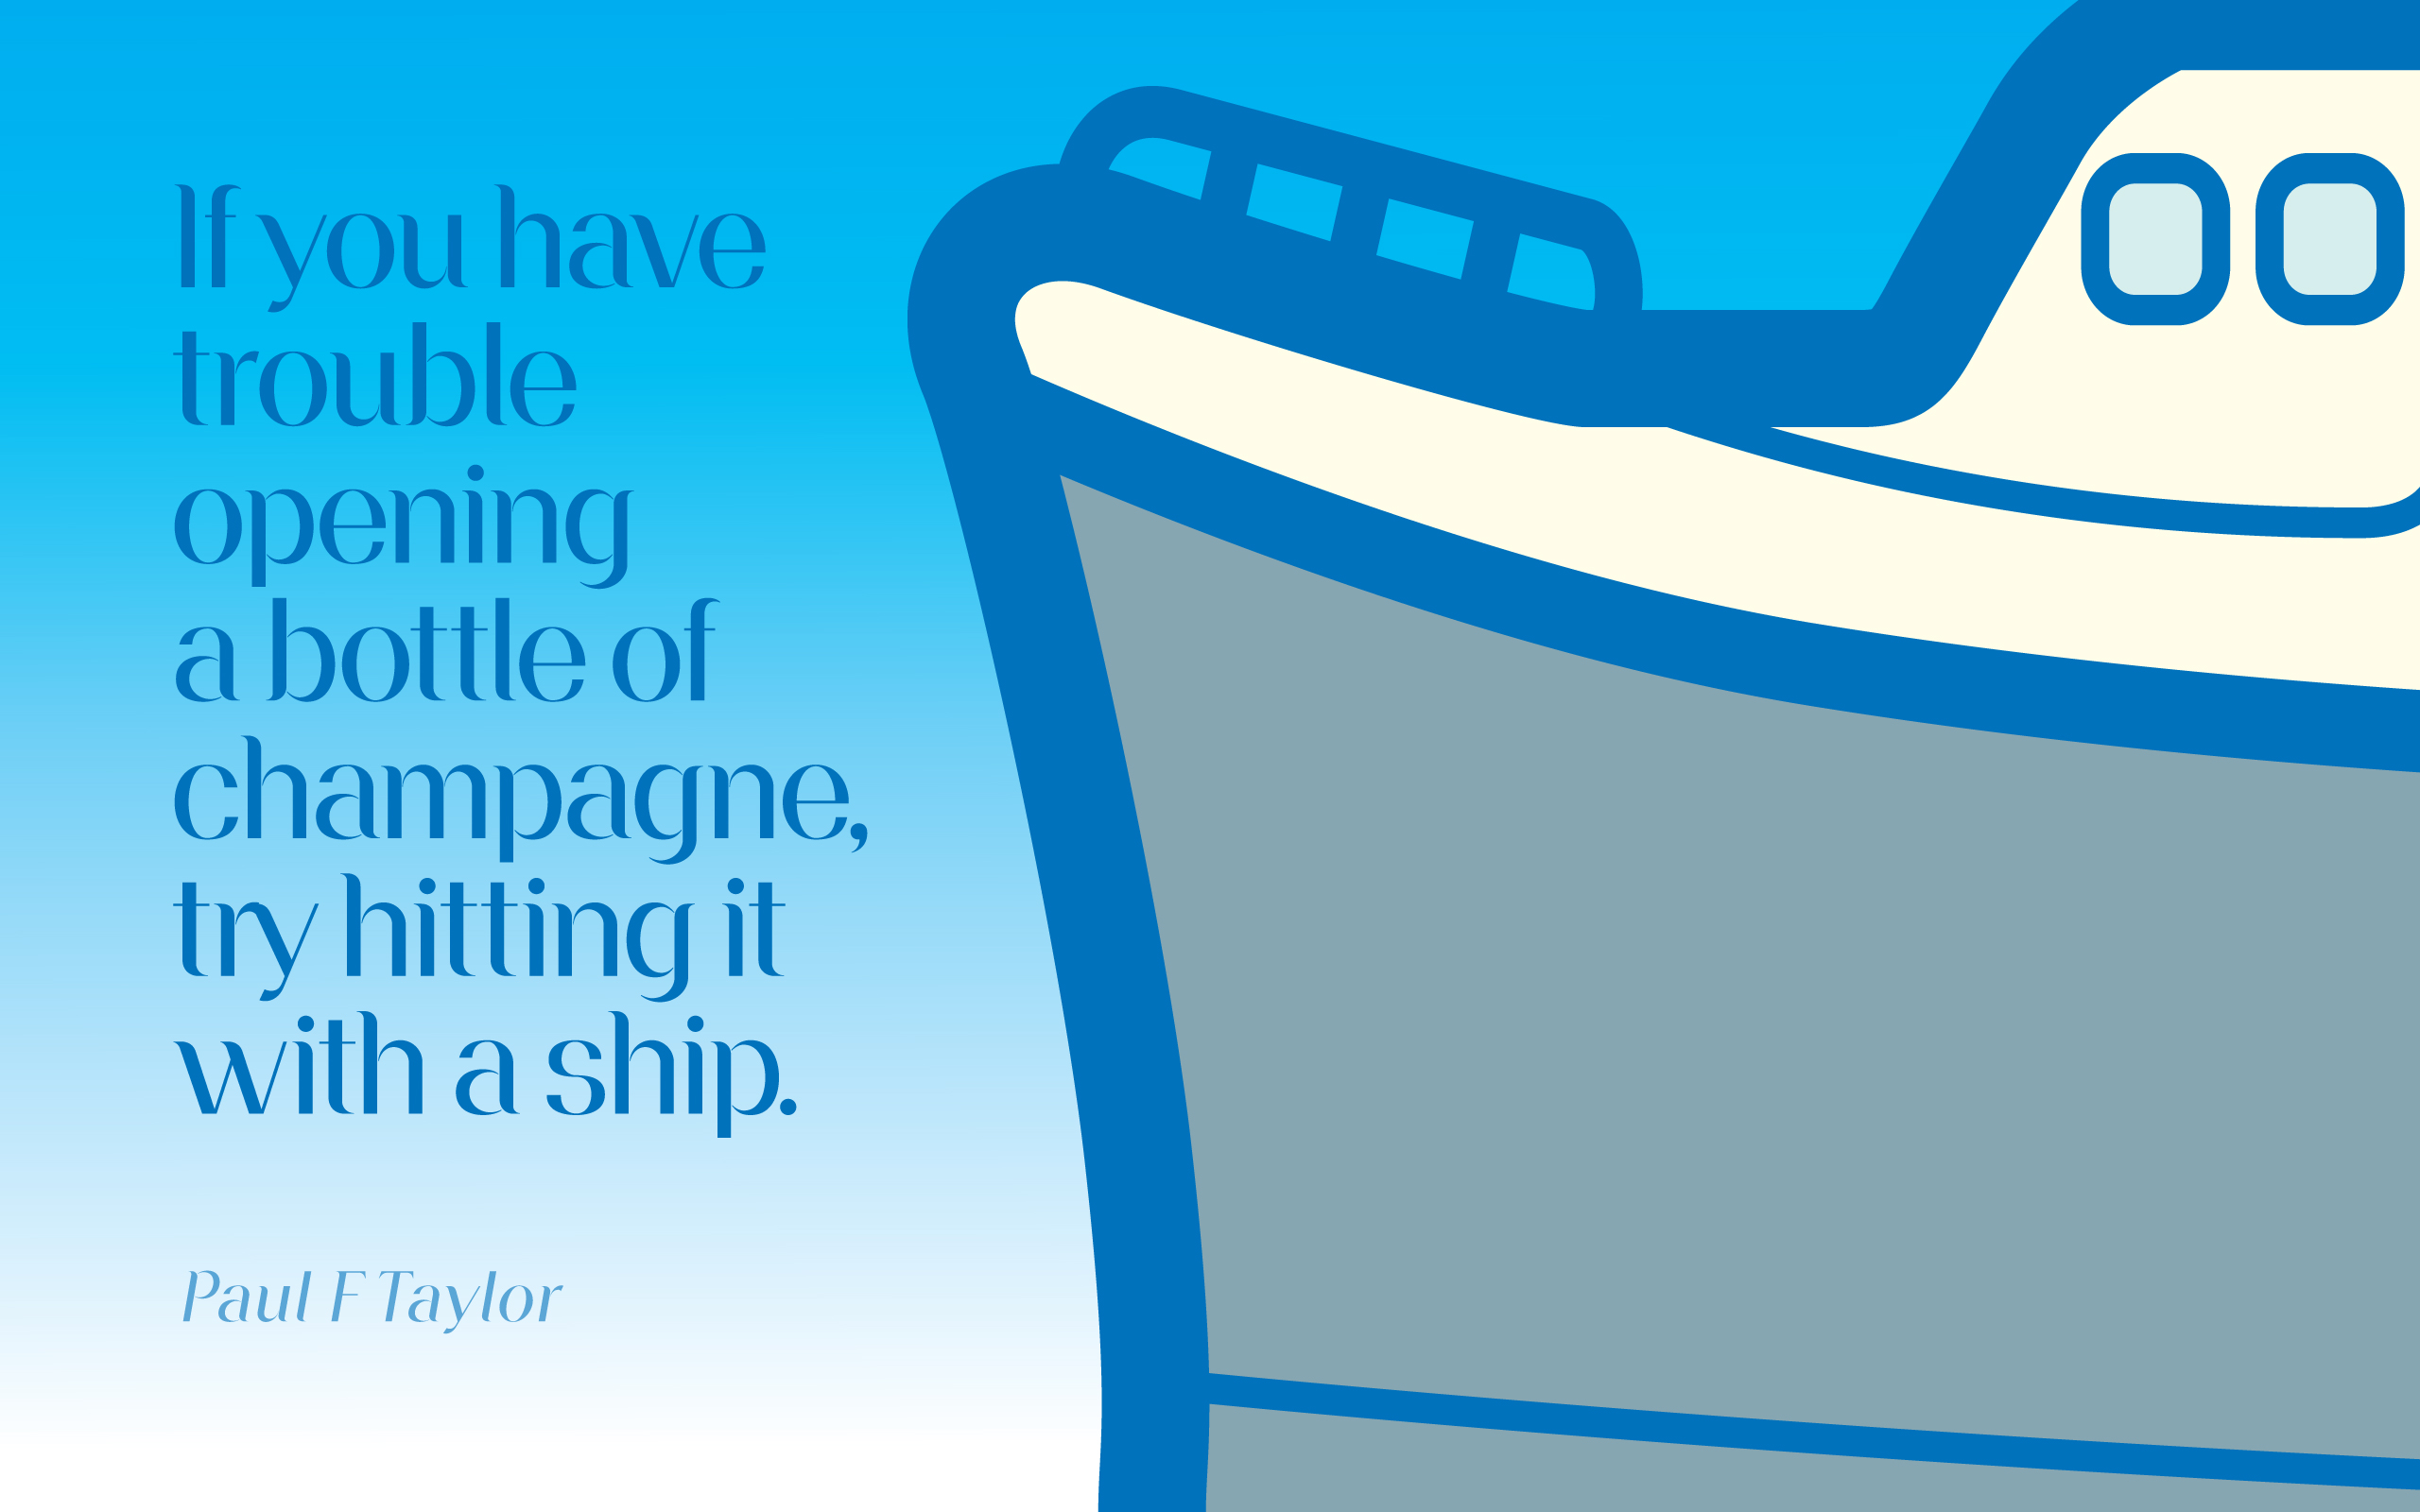 If you have trouble opening a bottle of champagne, try hitting it with a ship. — Paul F. Taylor [2560×1600]